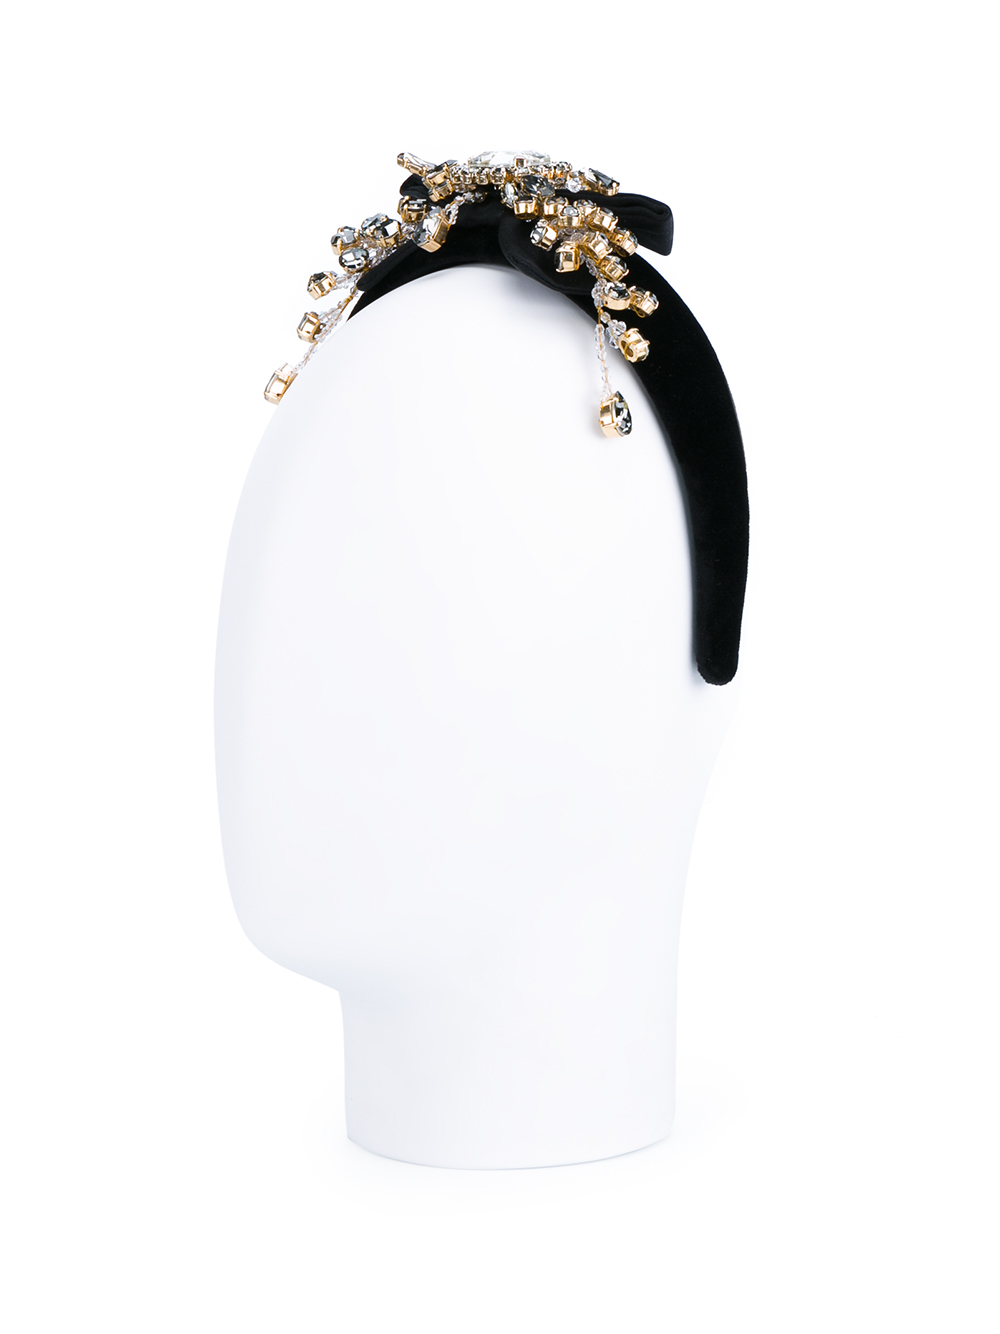 Lyst - Dolce   Gabbana Embellished Velvet Turban Headband in Black ad3c5021165